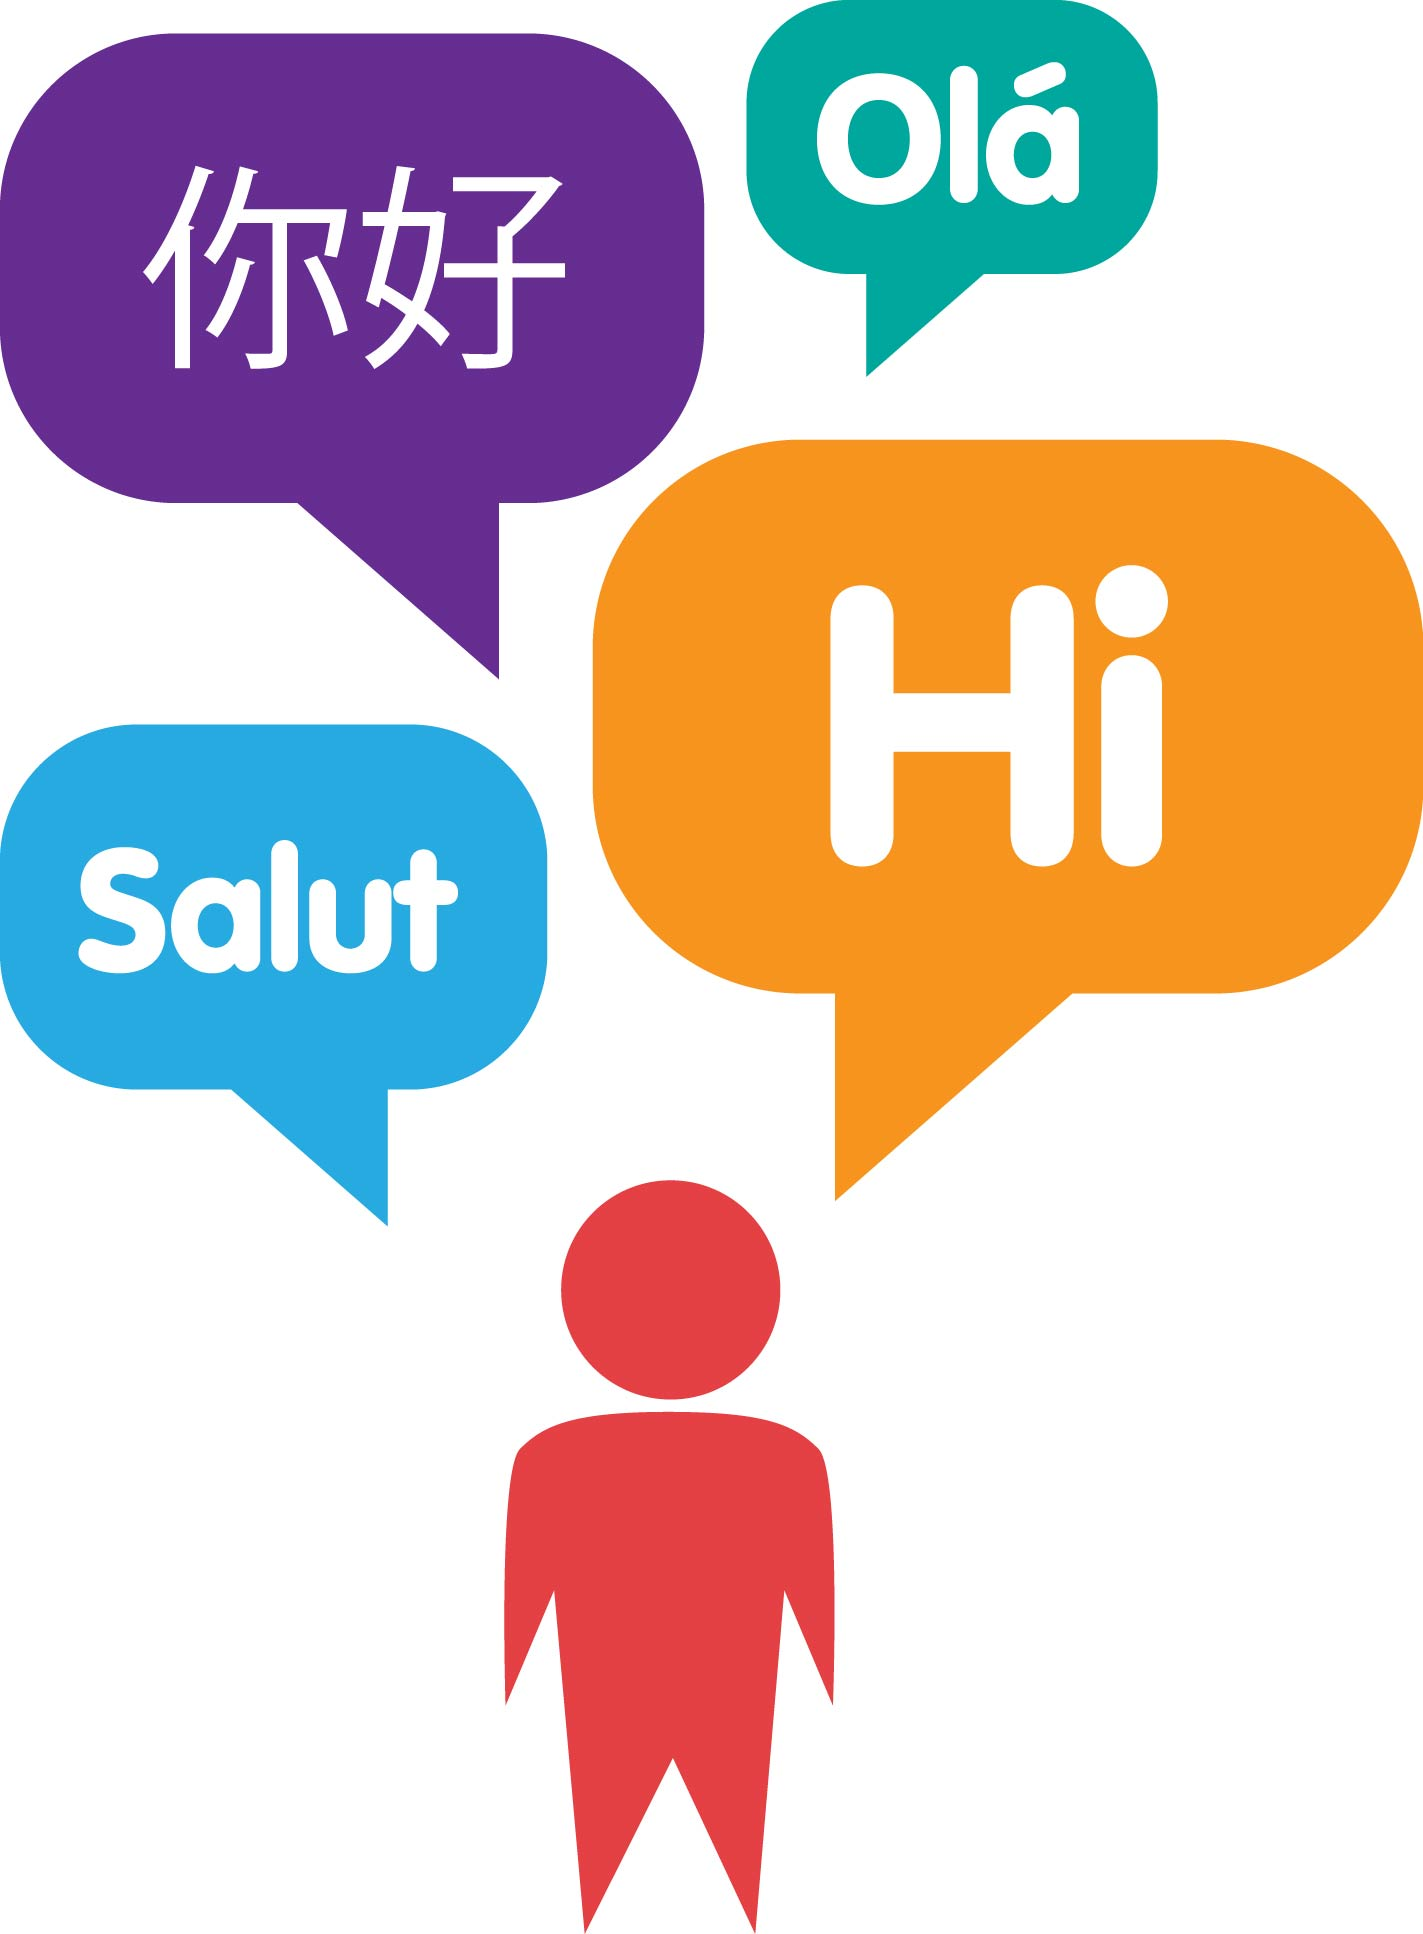 Crossing the Language Barrier With Digital Marketing.